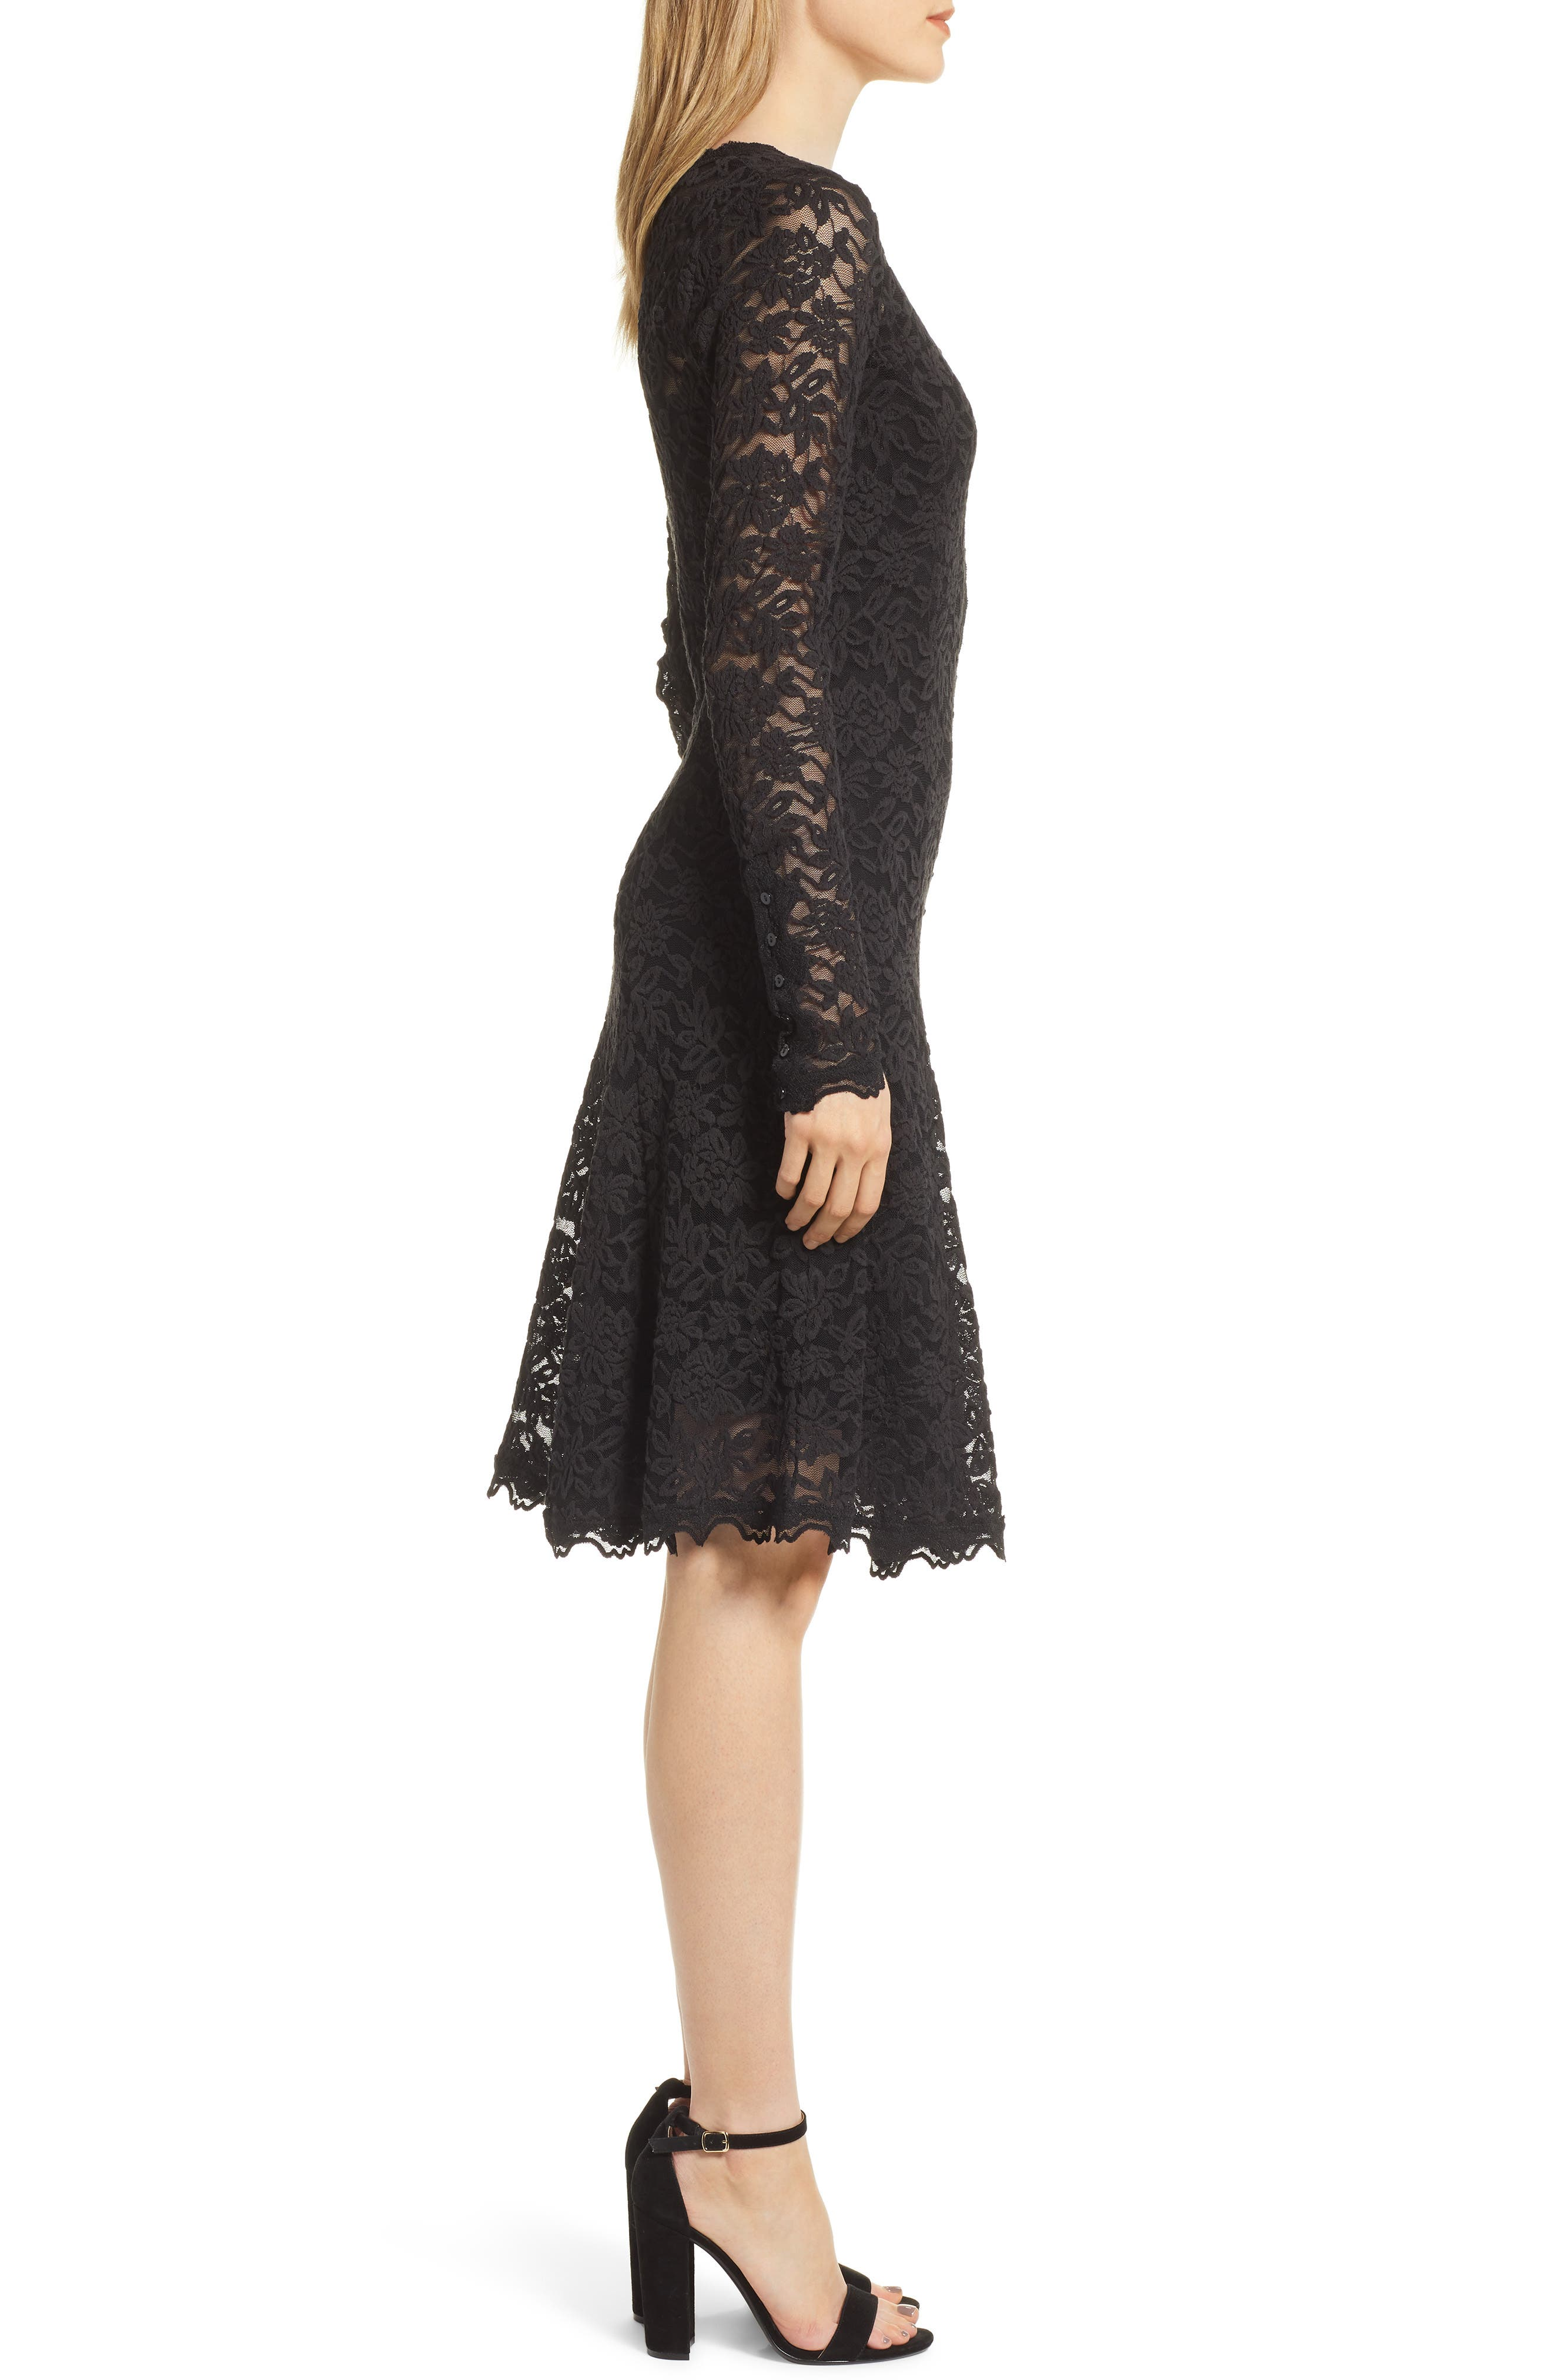 ROSEMUNDE, Delicia Fit & Flare Lace Dress, Alternate thumbnail 4, color, BLACK